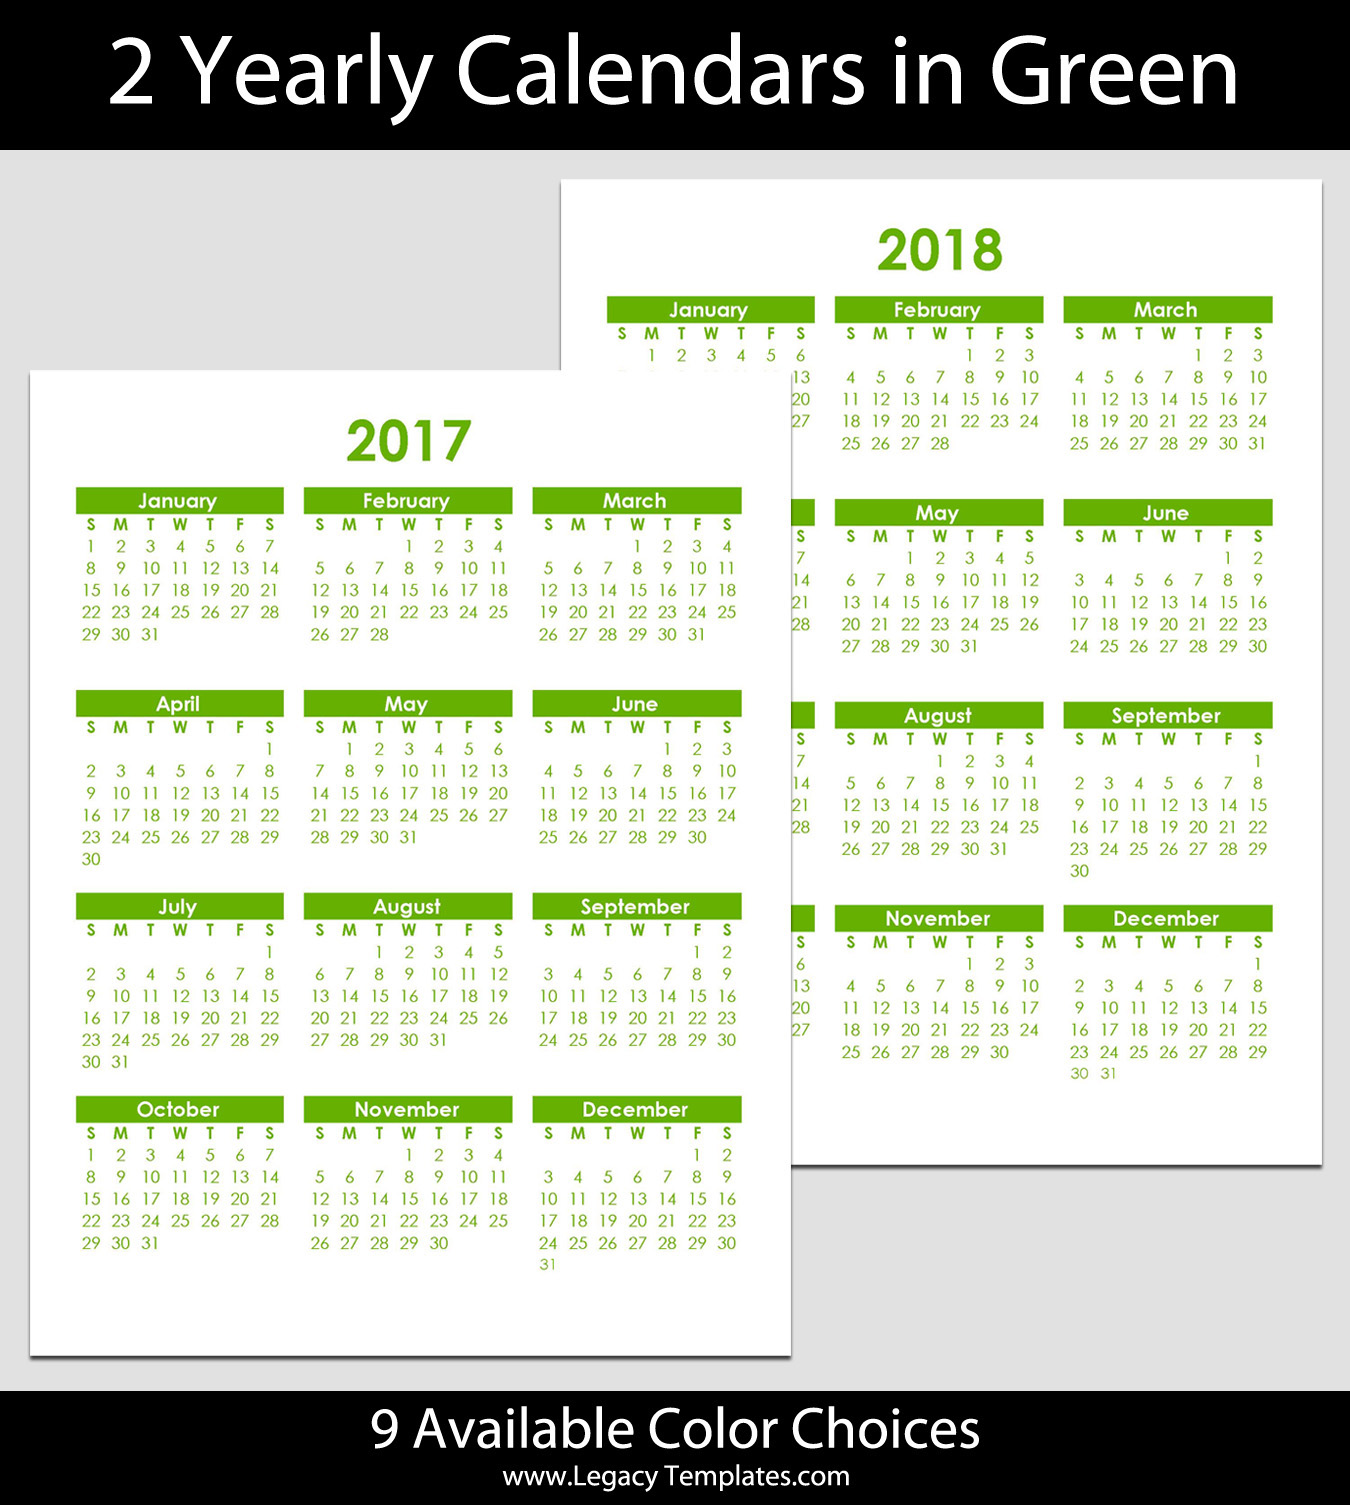 """2017 & 2018 Yearly Calendar - 8 1/2"""" x 11"""" 